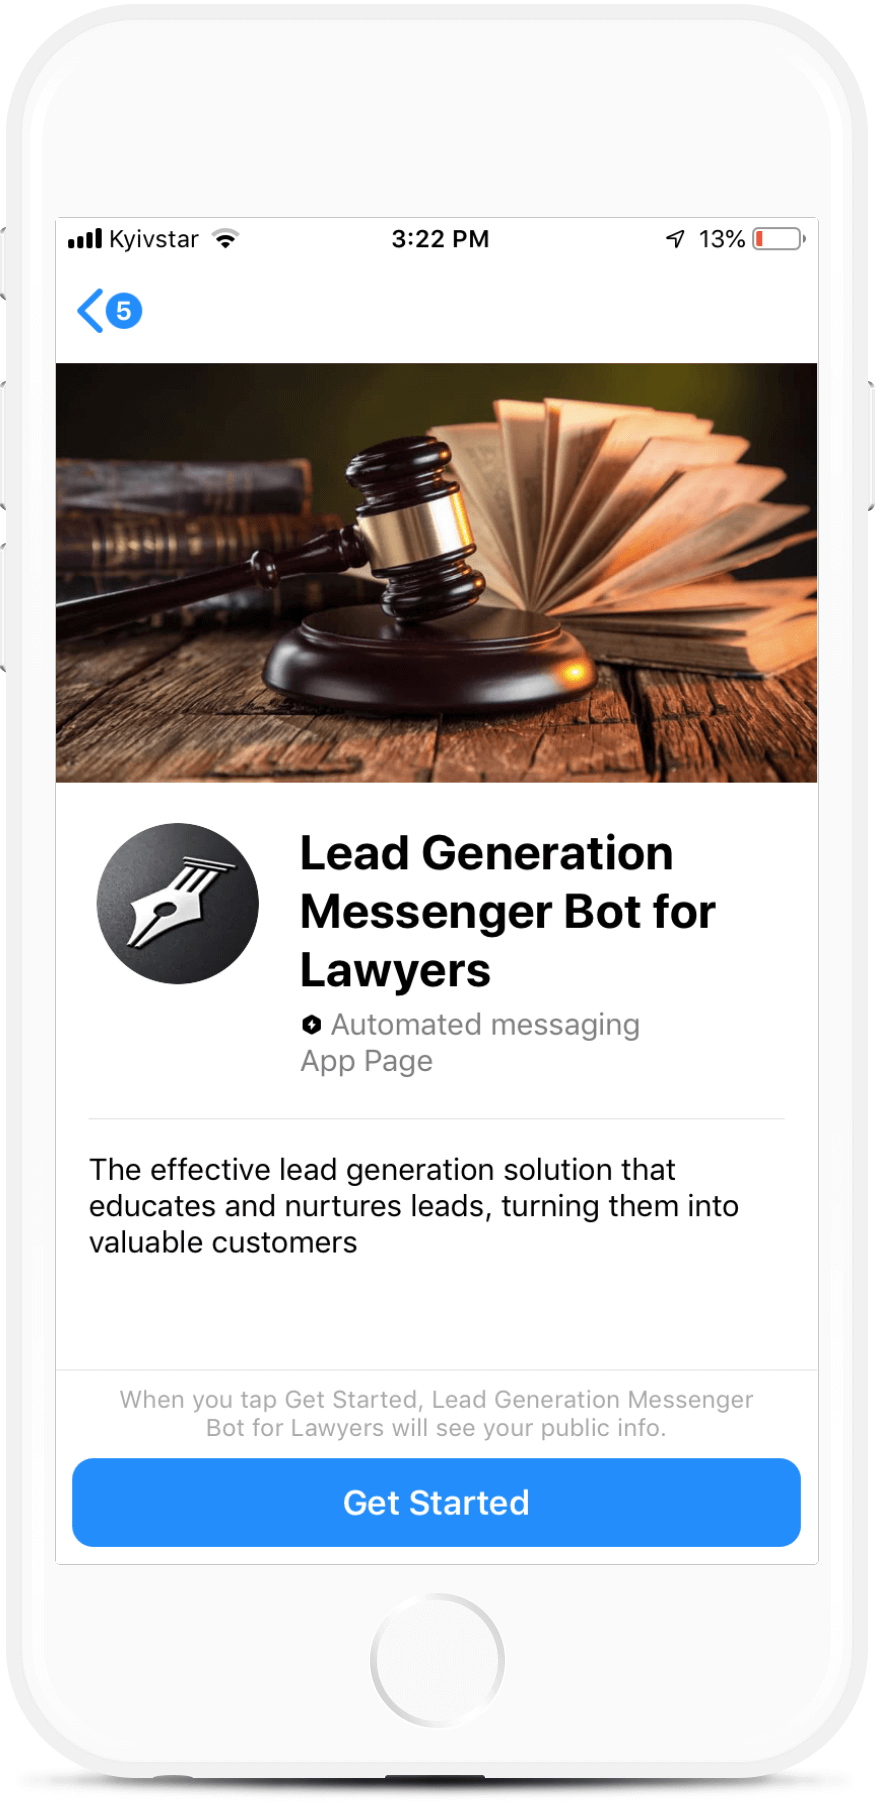 Lead Gen Lawyer Chatbot for Facebook Messenger